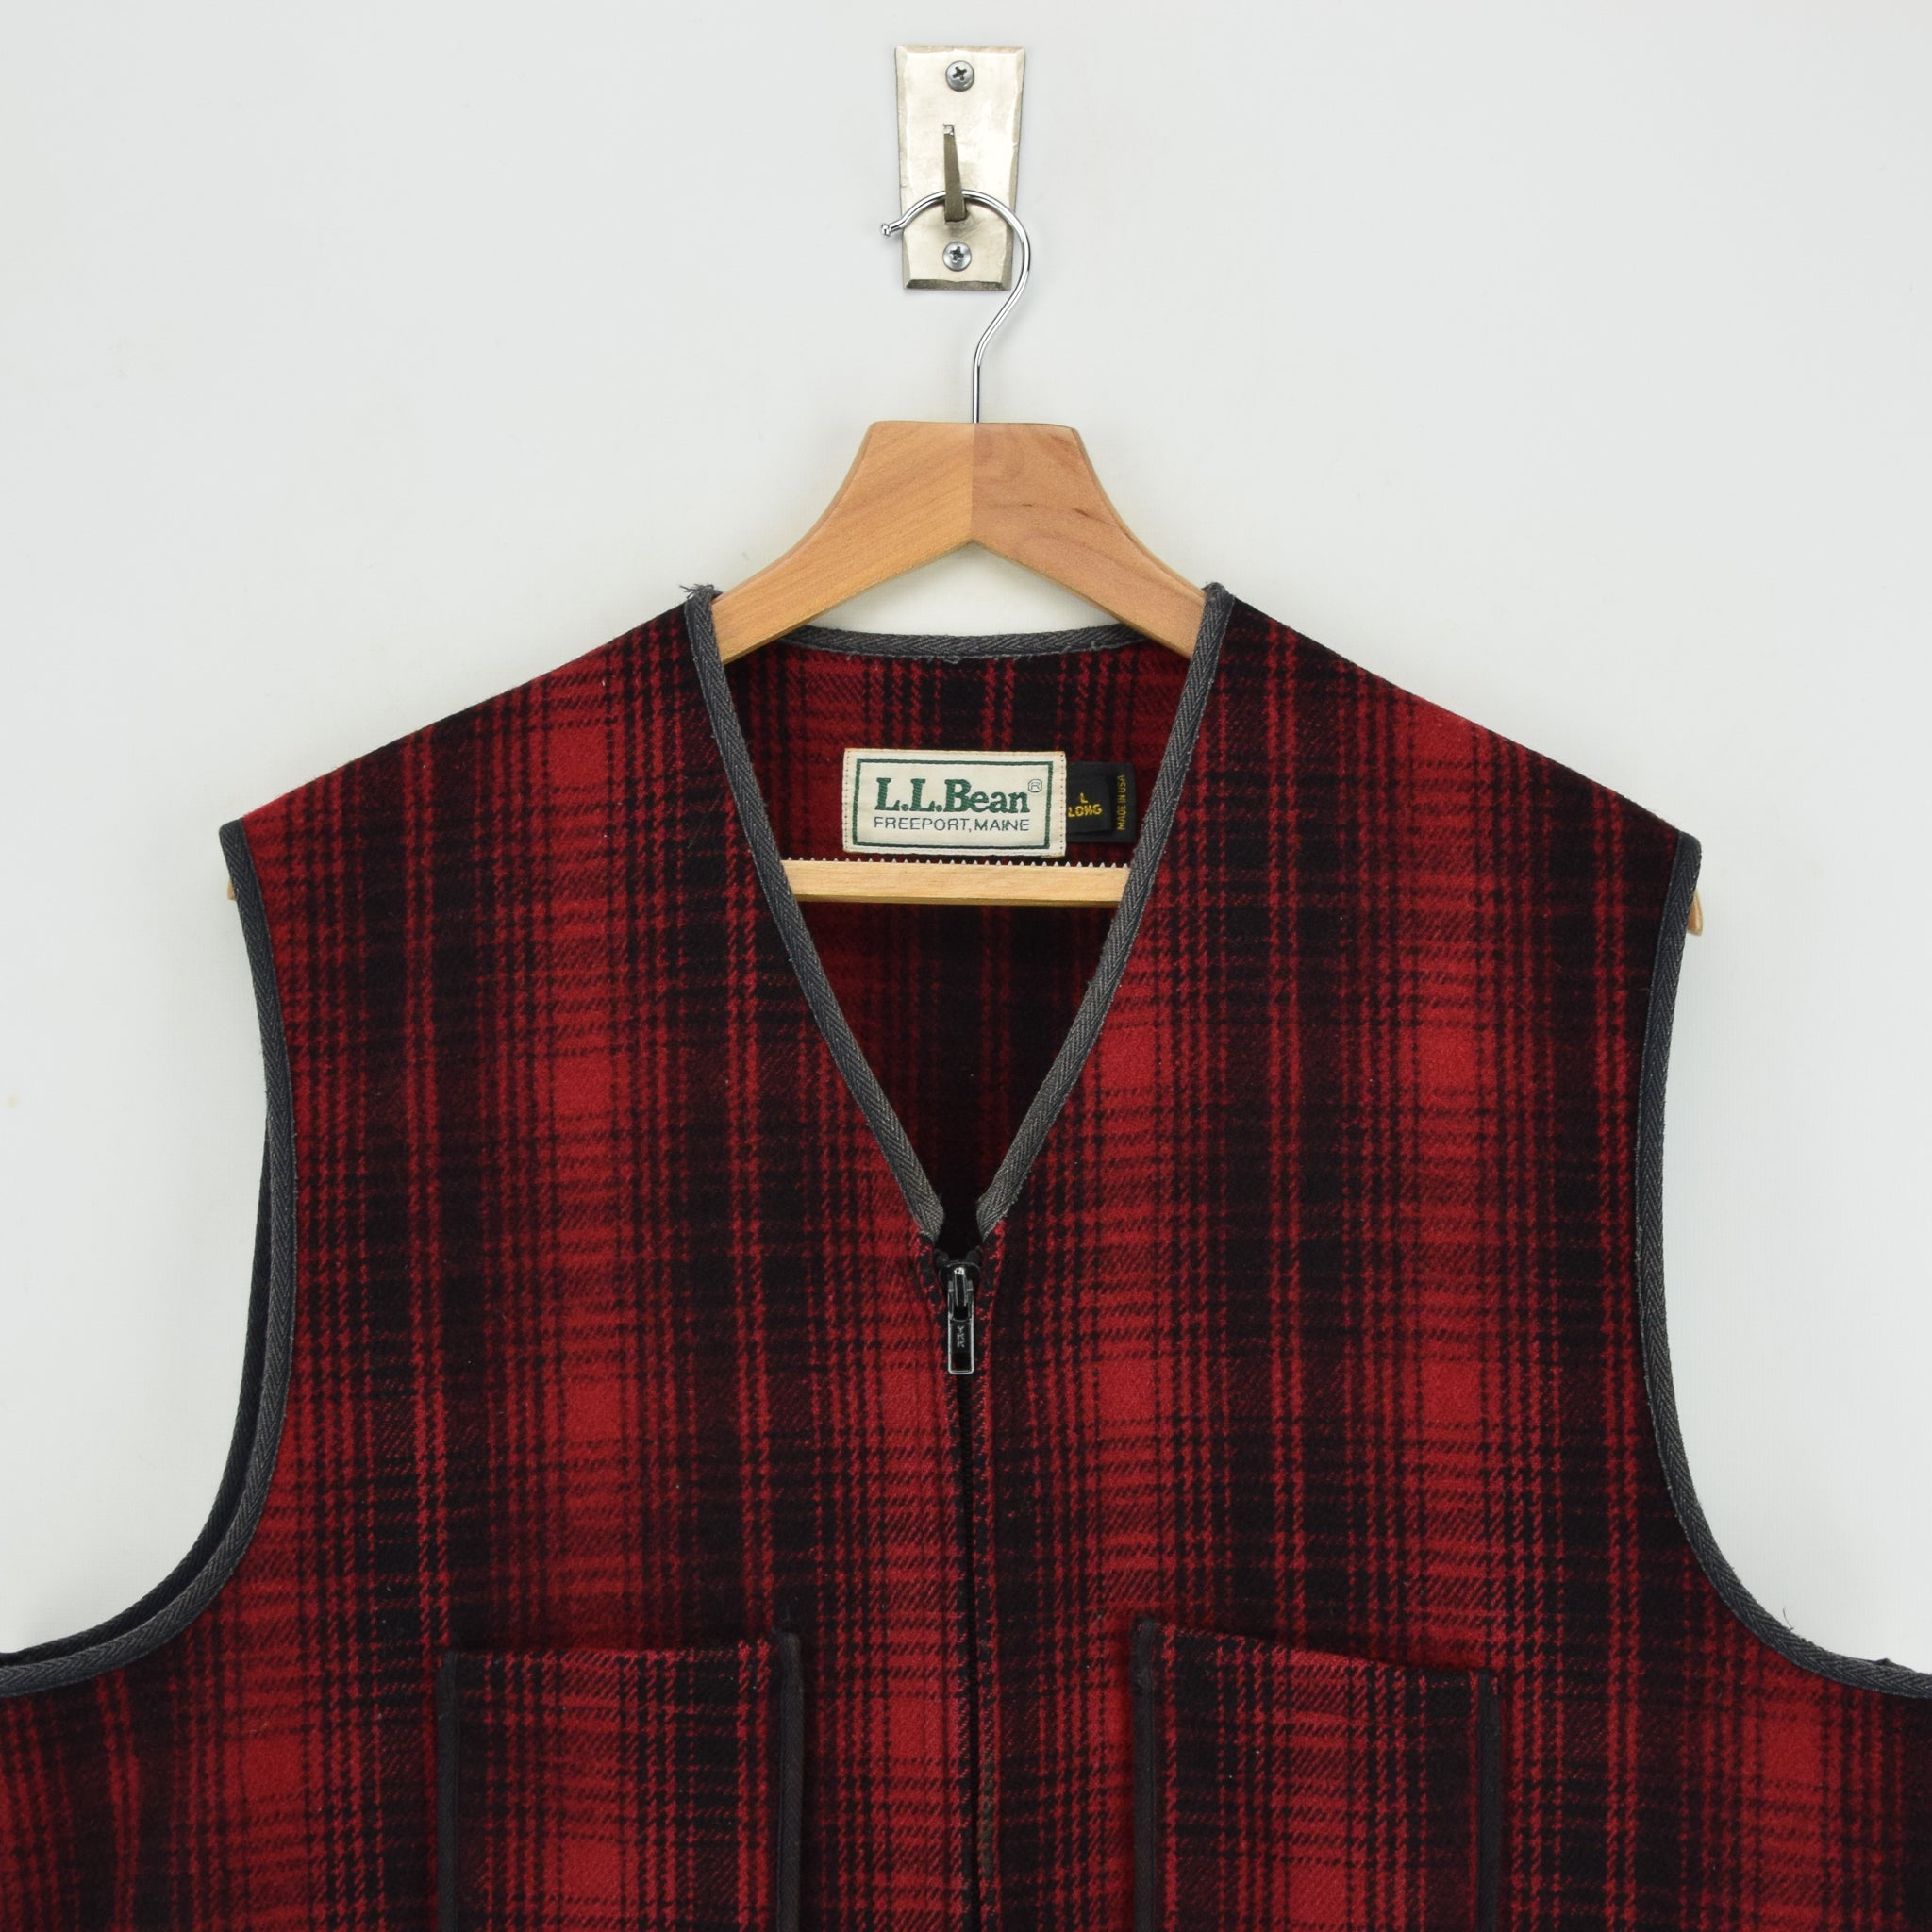 Vintage LL Bean Buffalo Plaid Wool Hunting Waistcoat Vest Made in USA L / XL chest